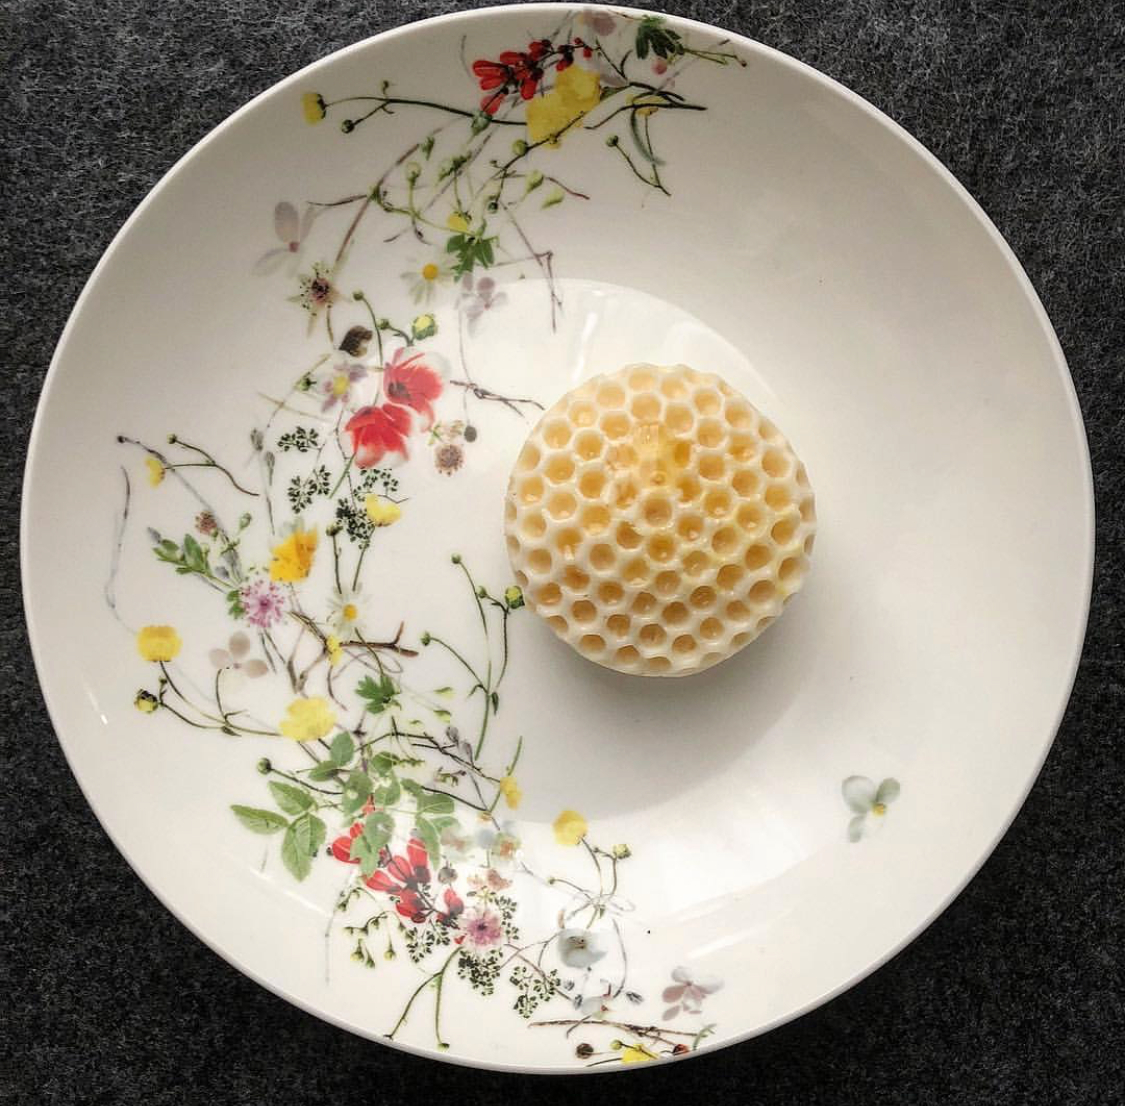 A honeycomb dish inspired by the food of Mendl's from The Grand Budapest Hotel.